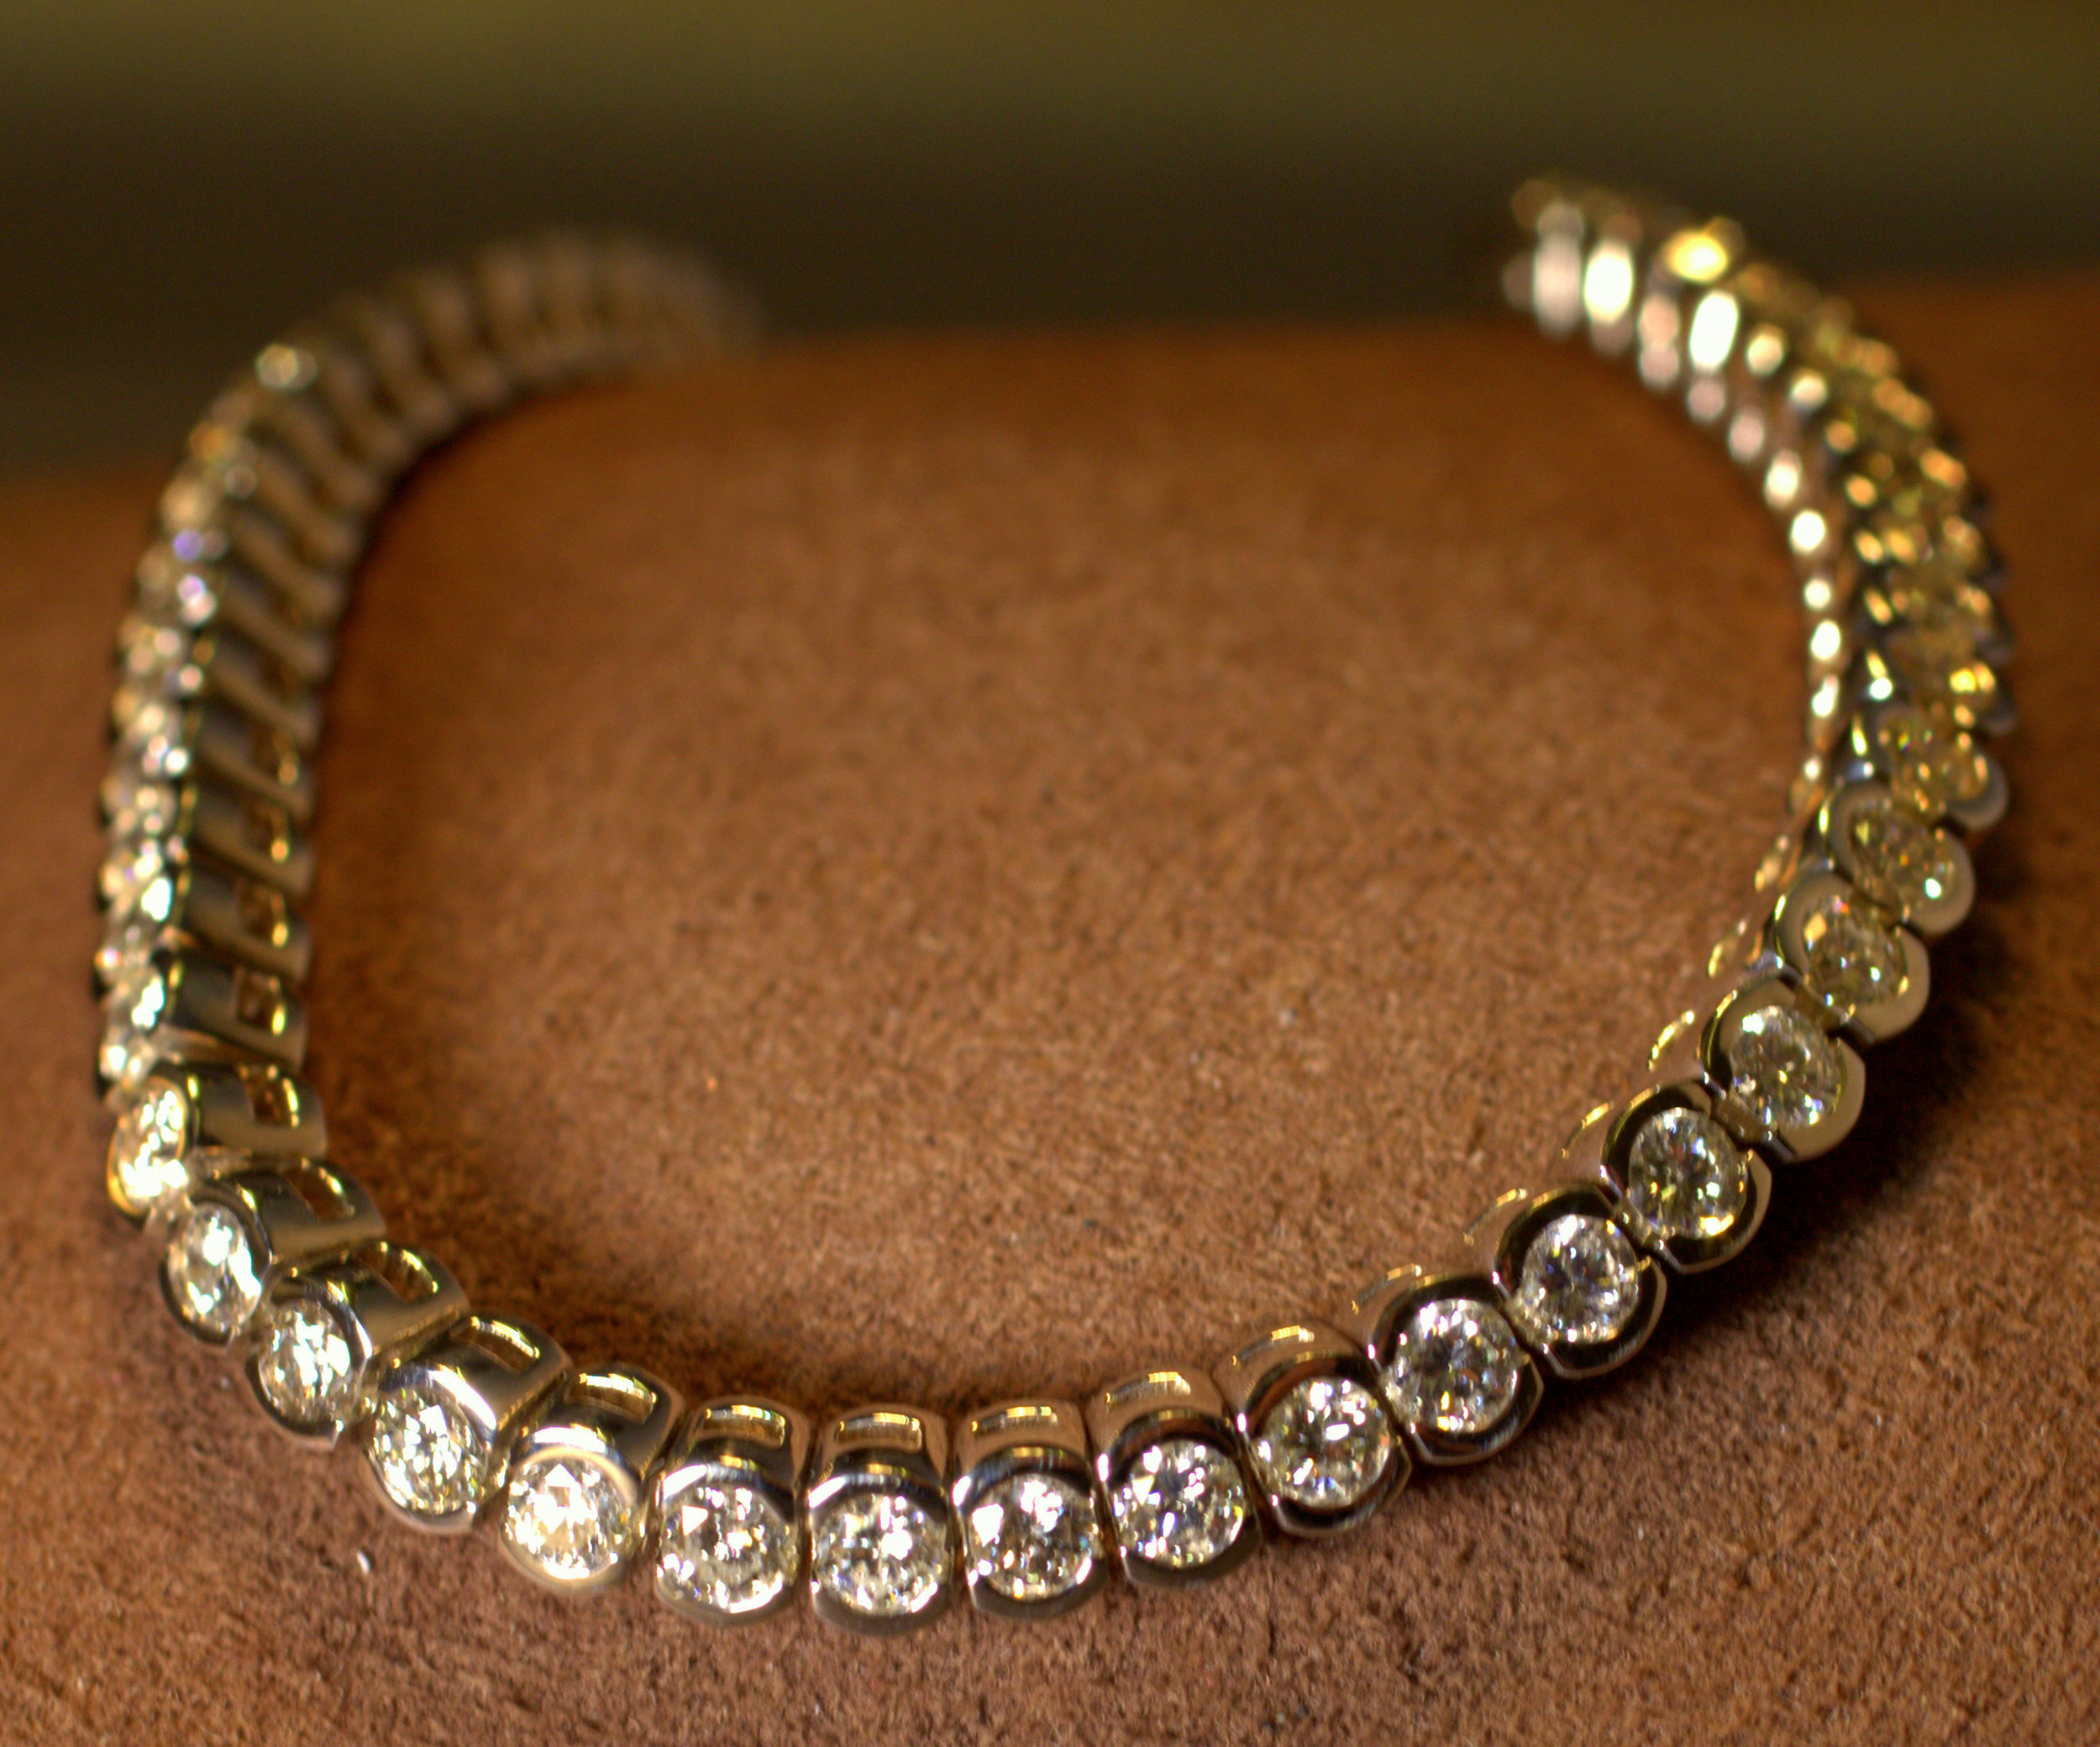 Classic chic half bezel diamond bracelet set with amazing cut diamonds that sparkle. 4.89 ct white gold diamond tennis bracelet for a modern look.  $8000